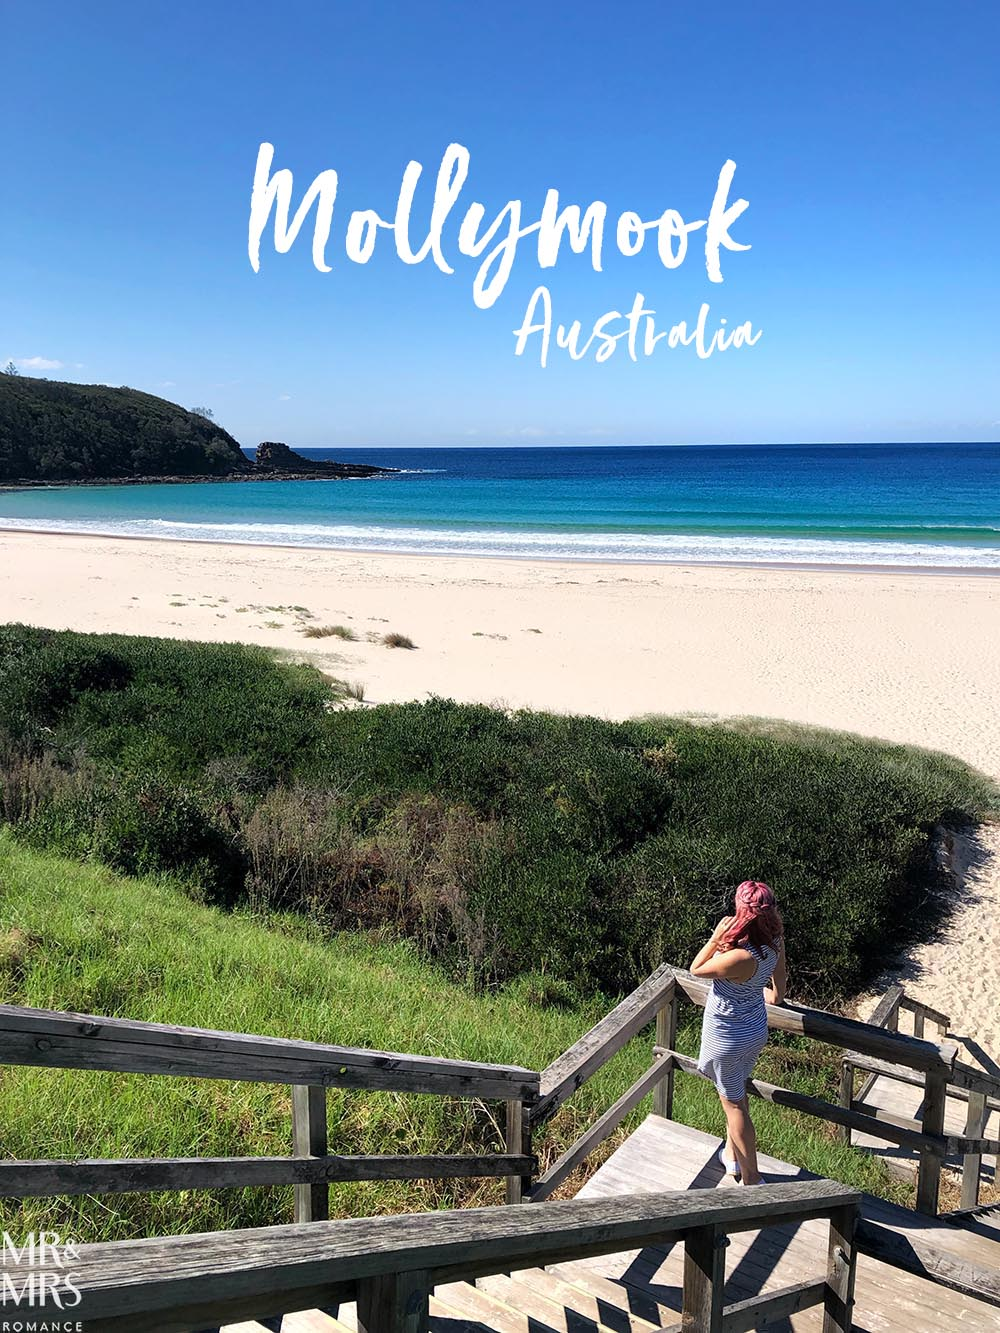 Rick Stein at Bannisters Mollymook, NSW - Mollymook Beach and headland